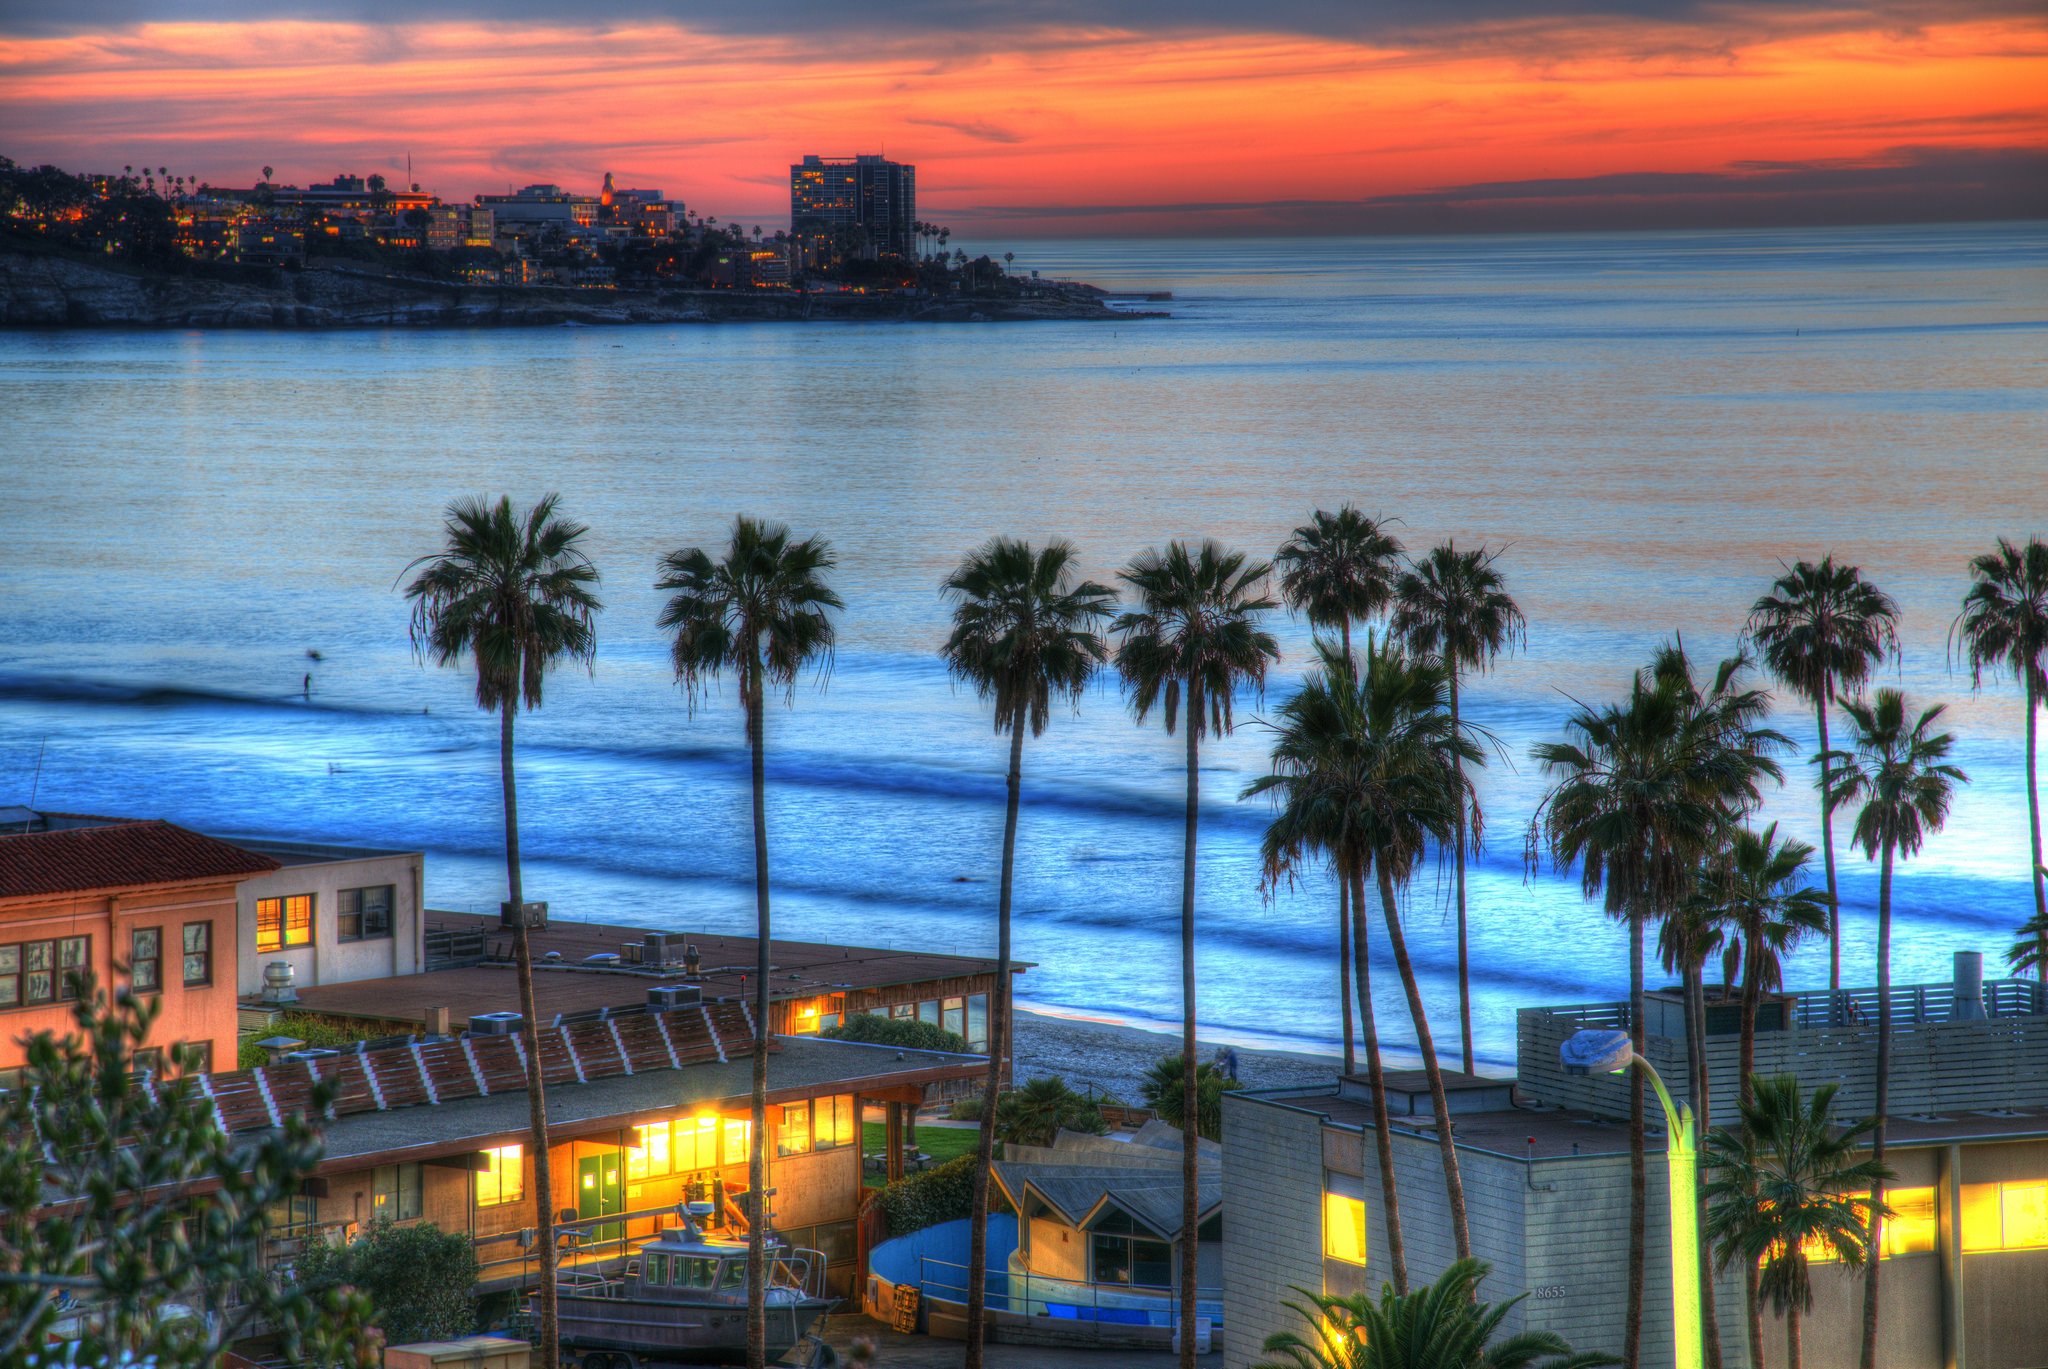 La Jolla © SD Dirk/Flickr